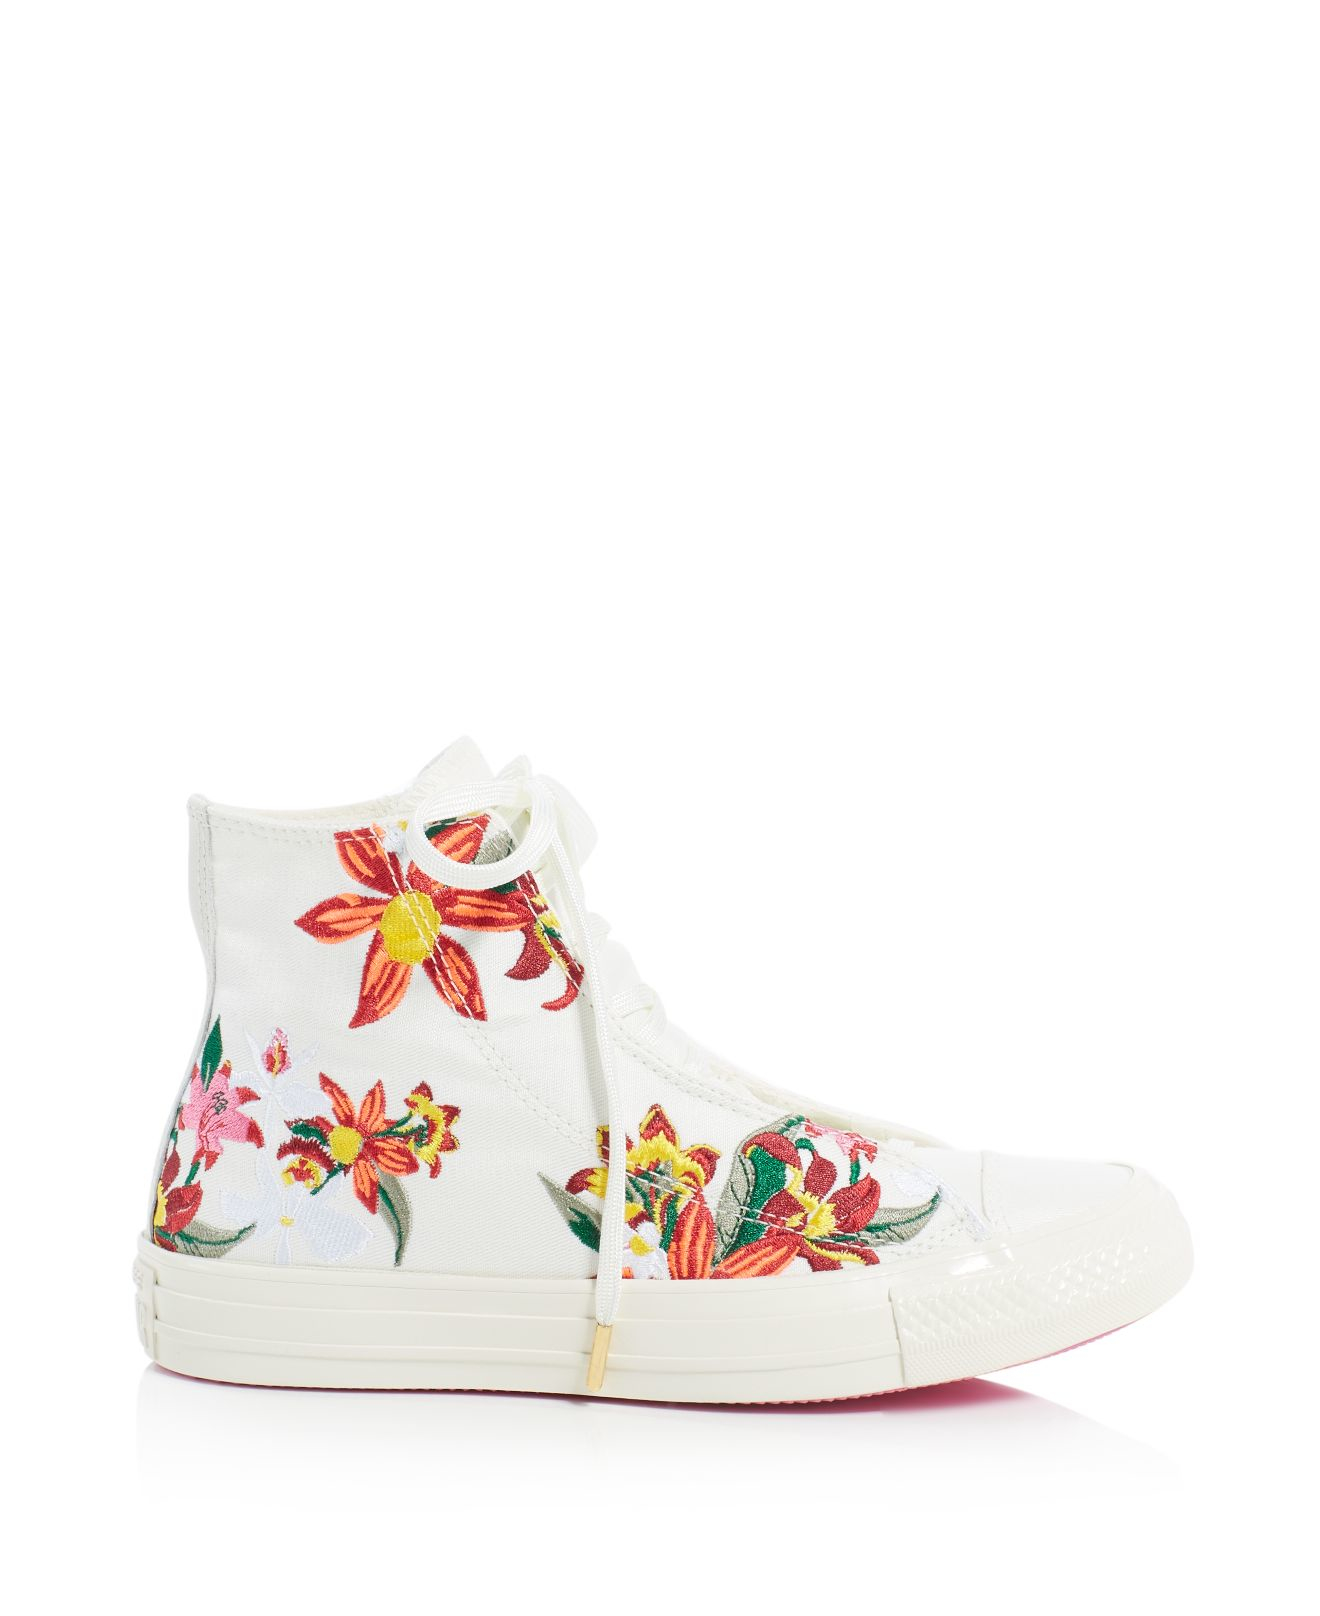 Converse patbo collection chuck taylor all star floral